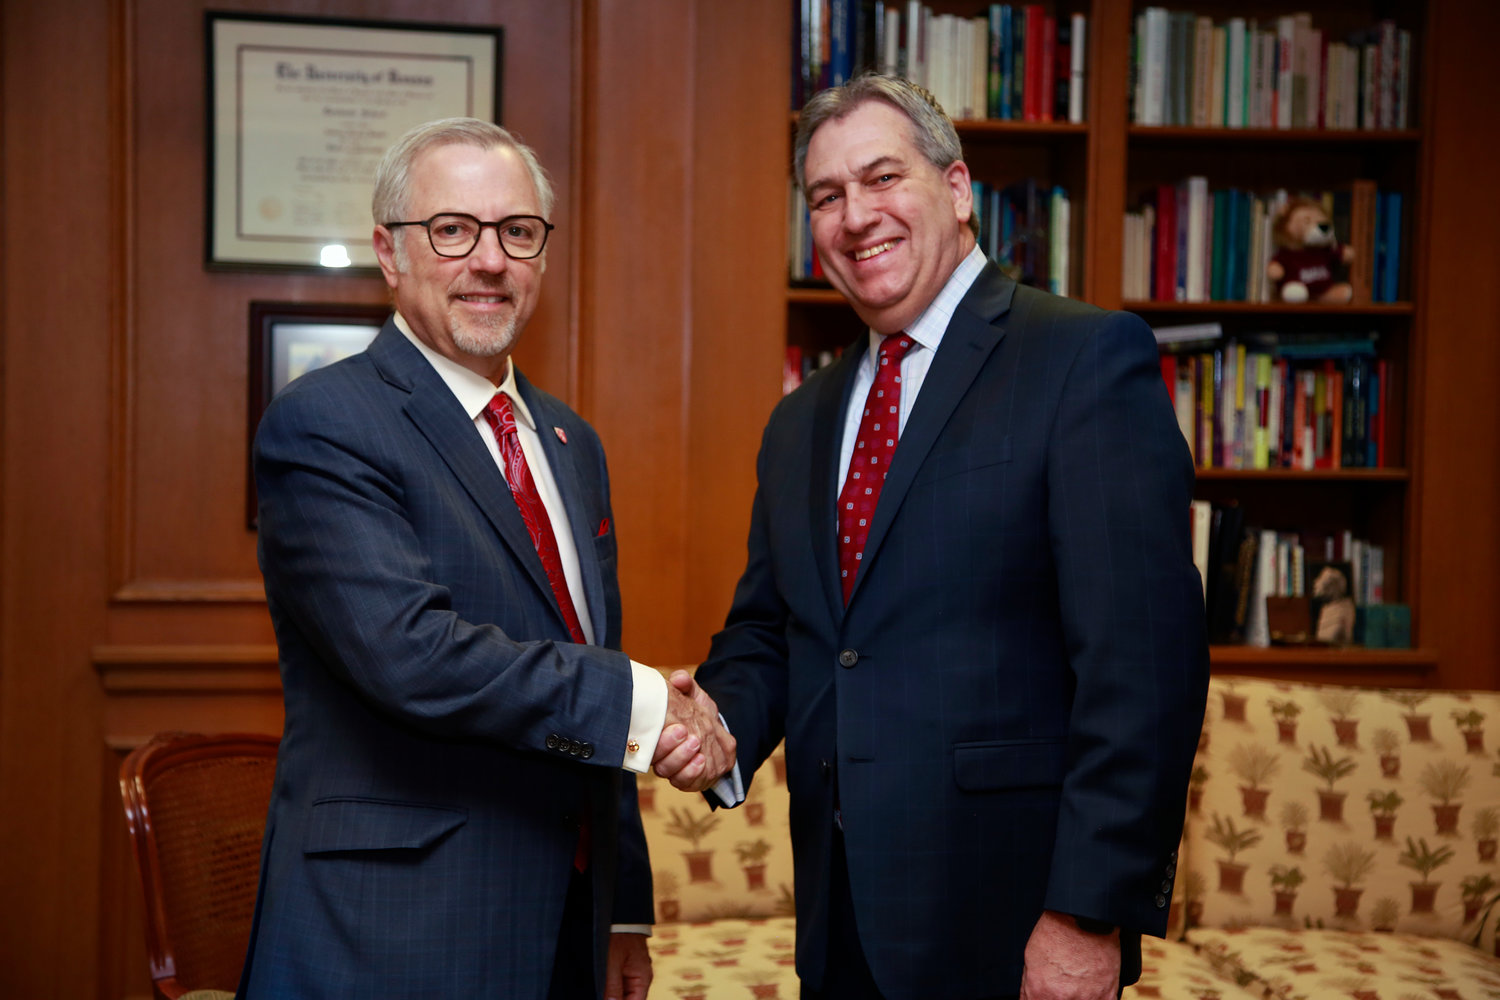 Dr. James Lentini, left, was welcomed to Molloy by current President Dr. Drew Bogner.